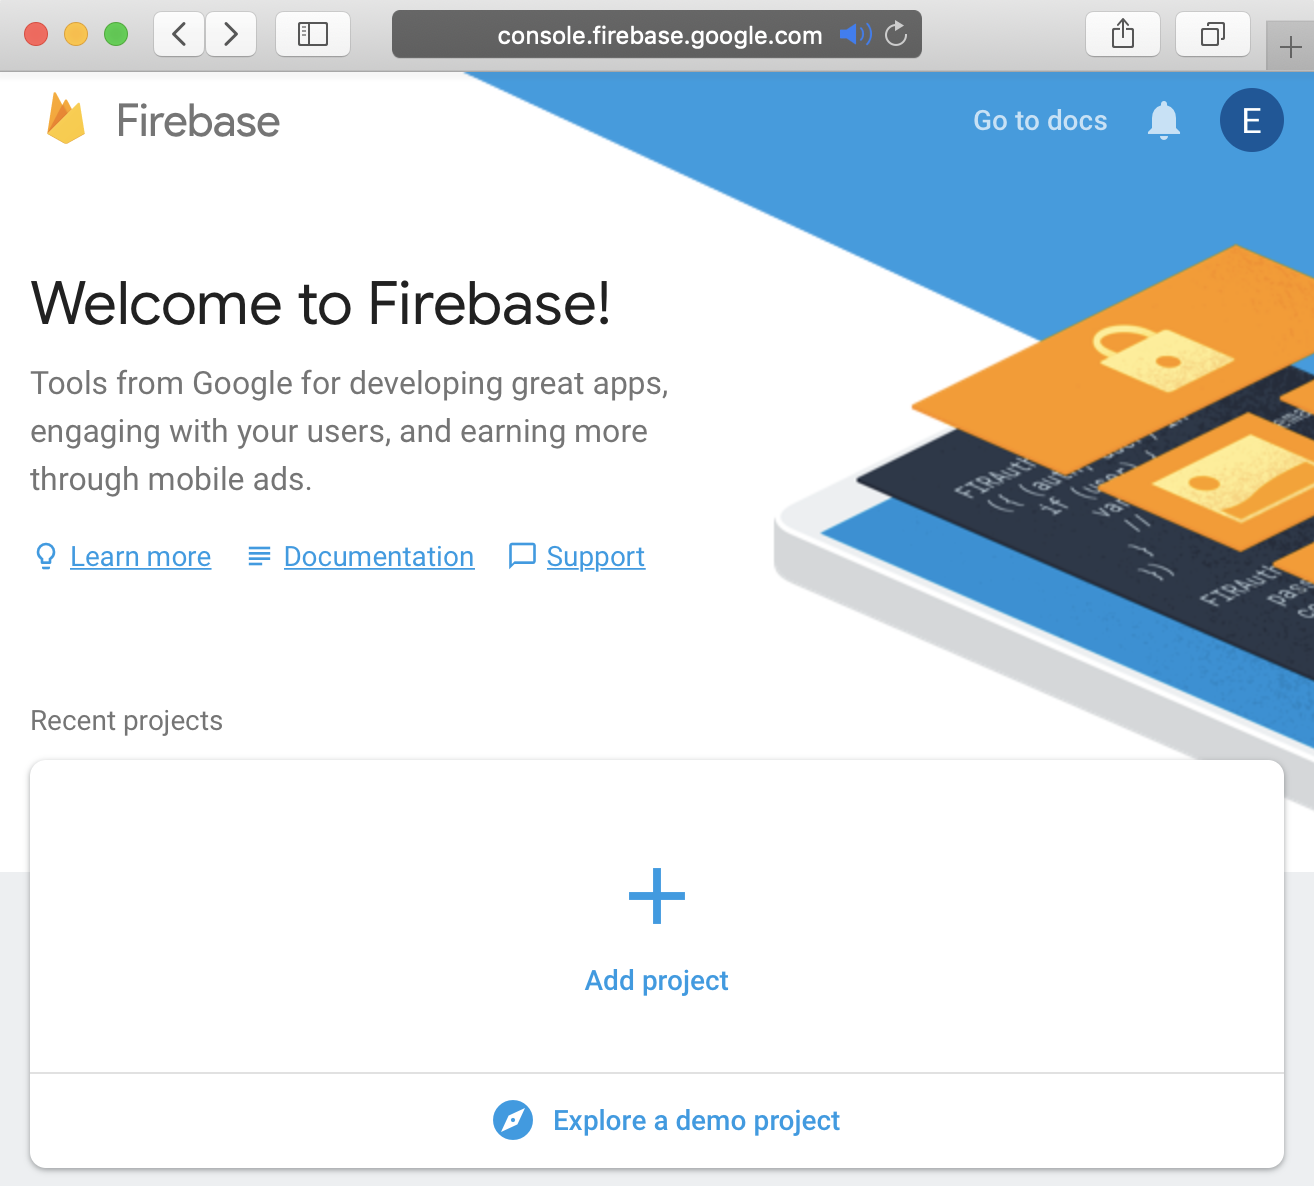 Make an Agora iOS Call in CallKit with Firebase - Eric Giannini - Medium